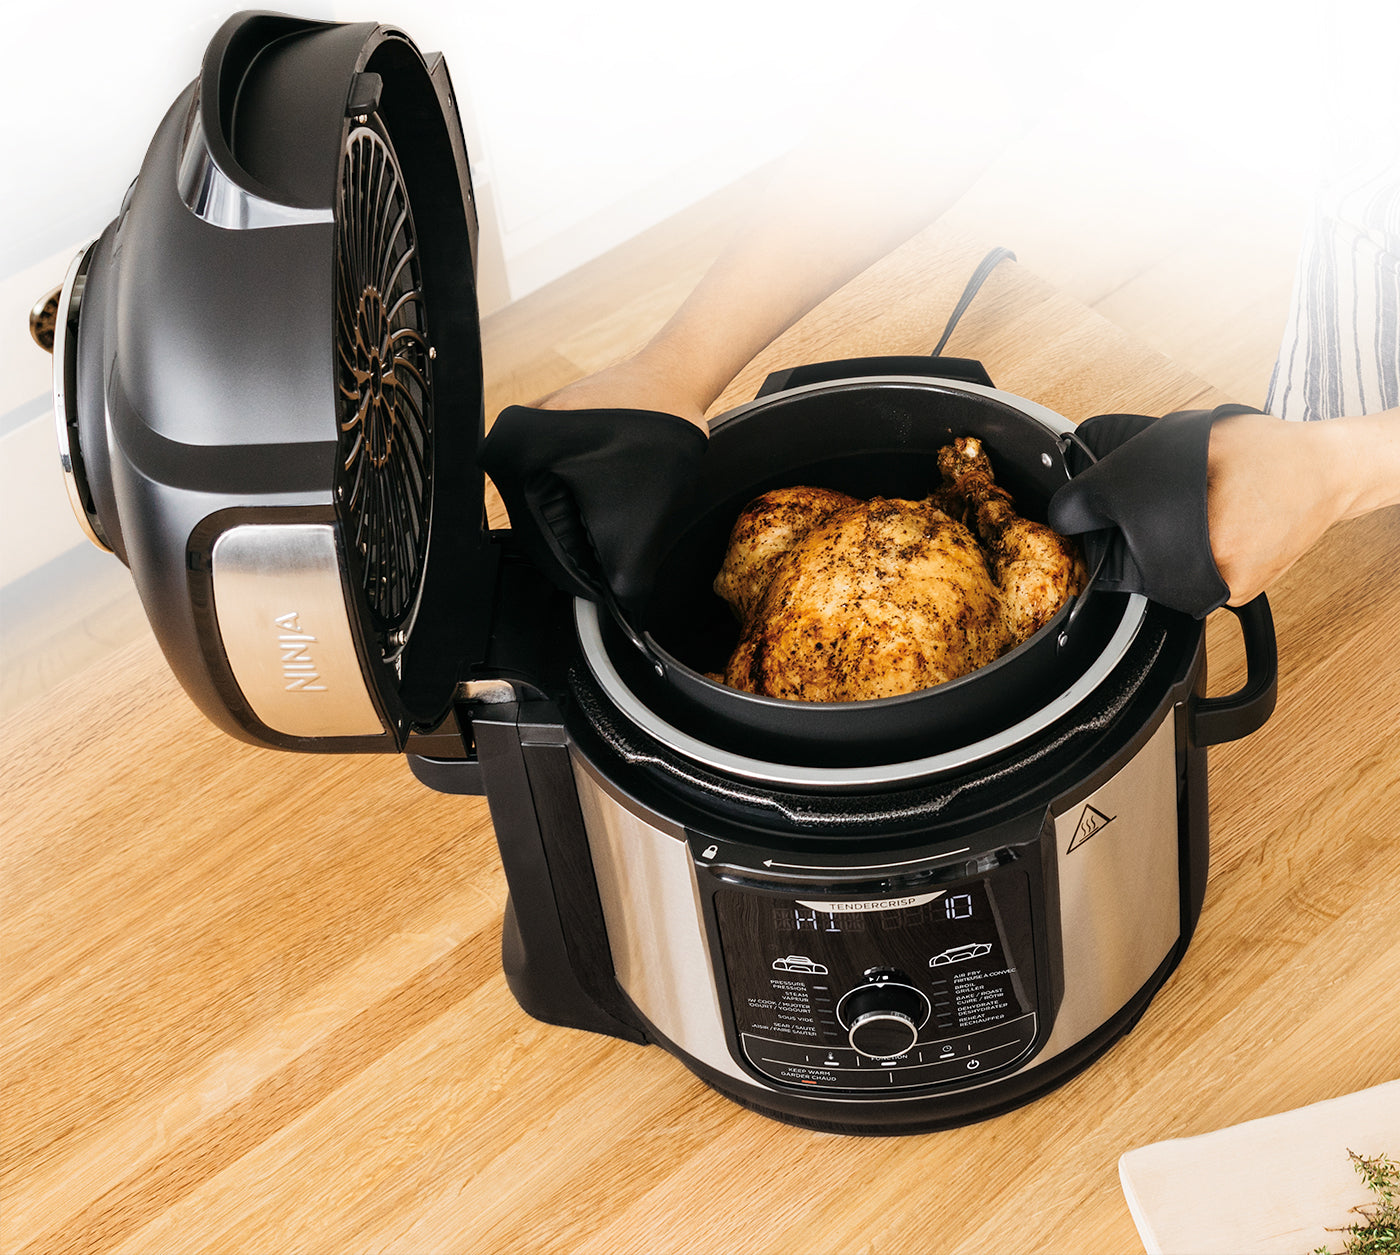 The pressure cooker that crisps